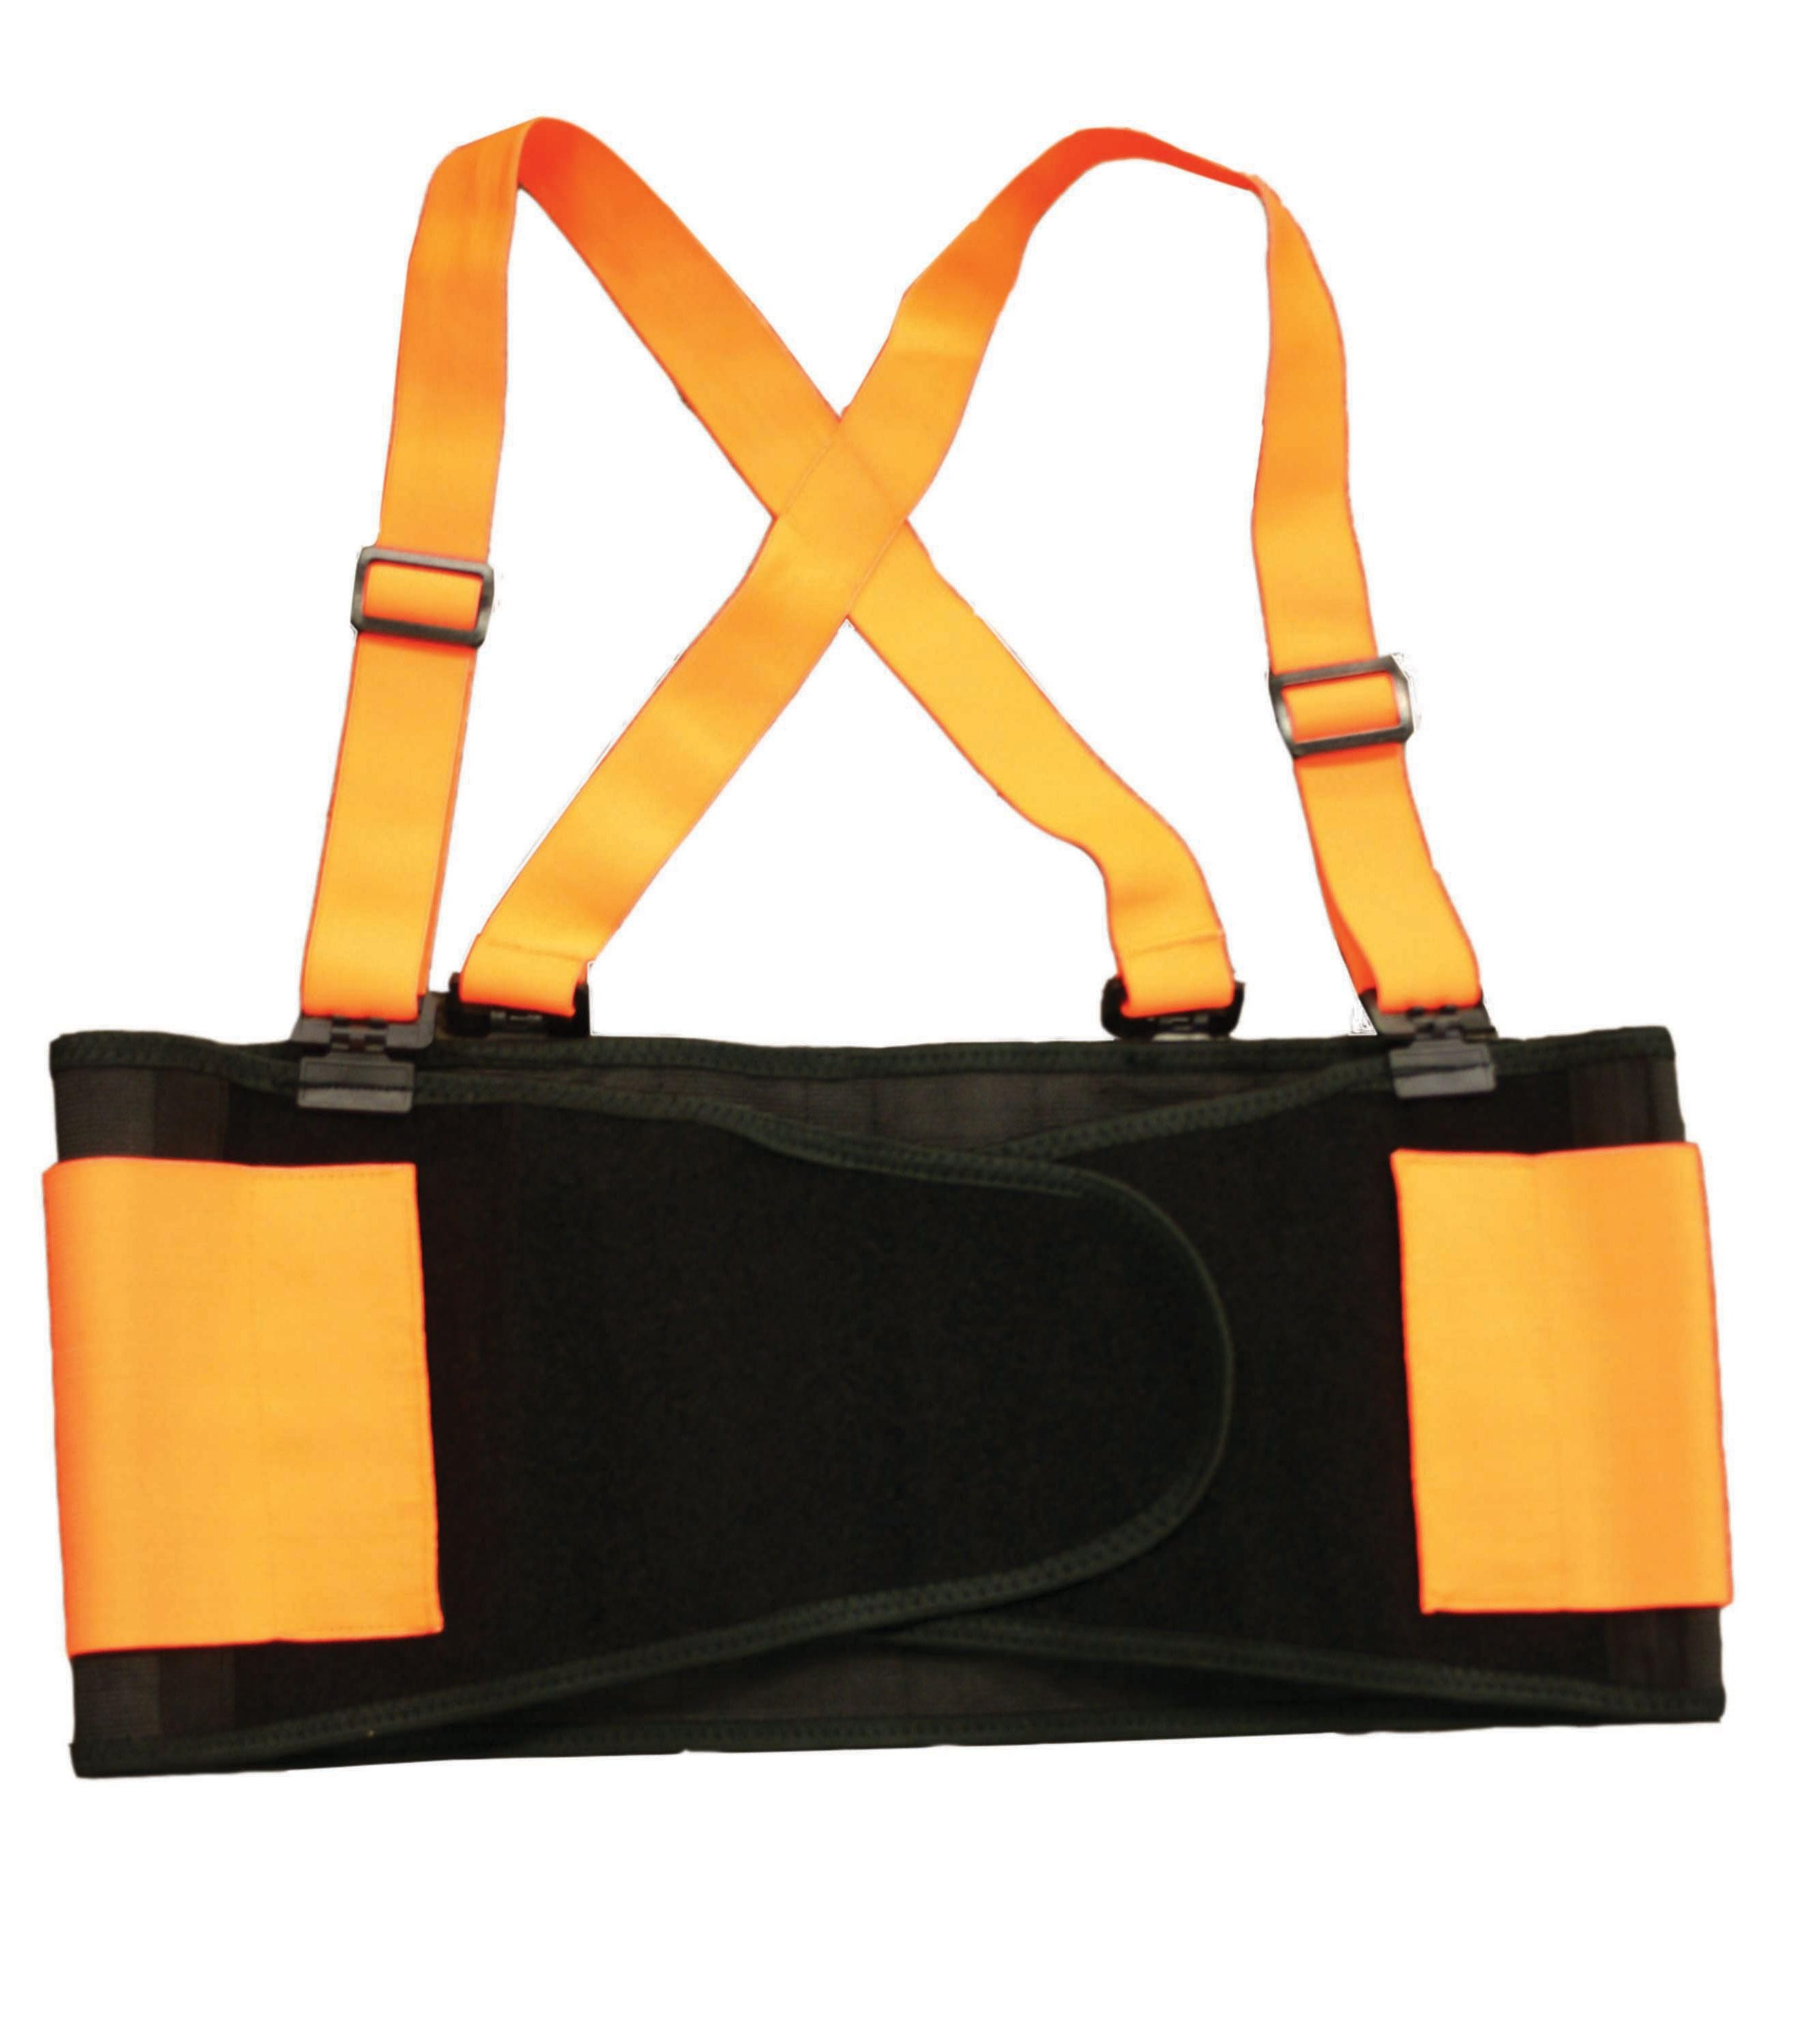 TOTALPACK® Economy Back Support Belt with Suspender - Medium Orange/Black, 1 Unit